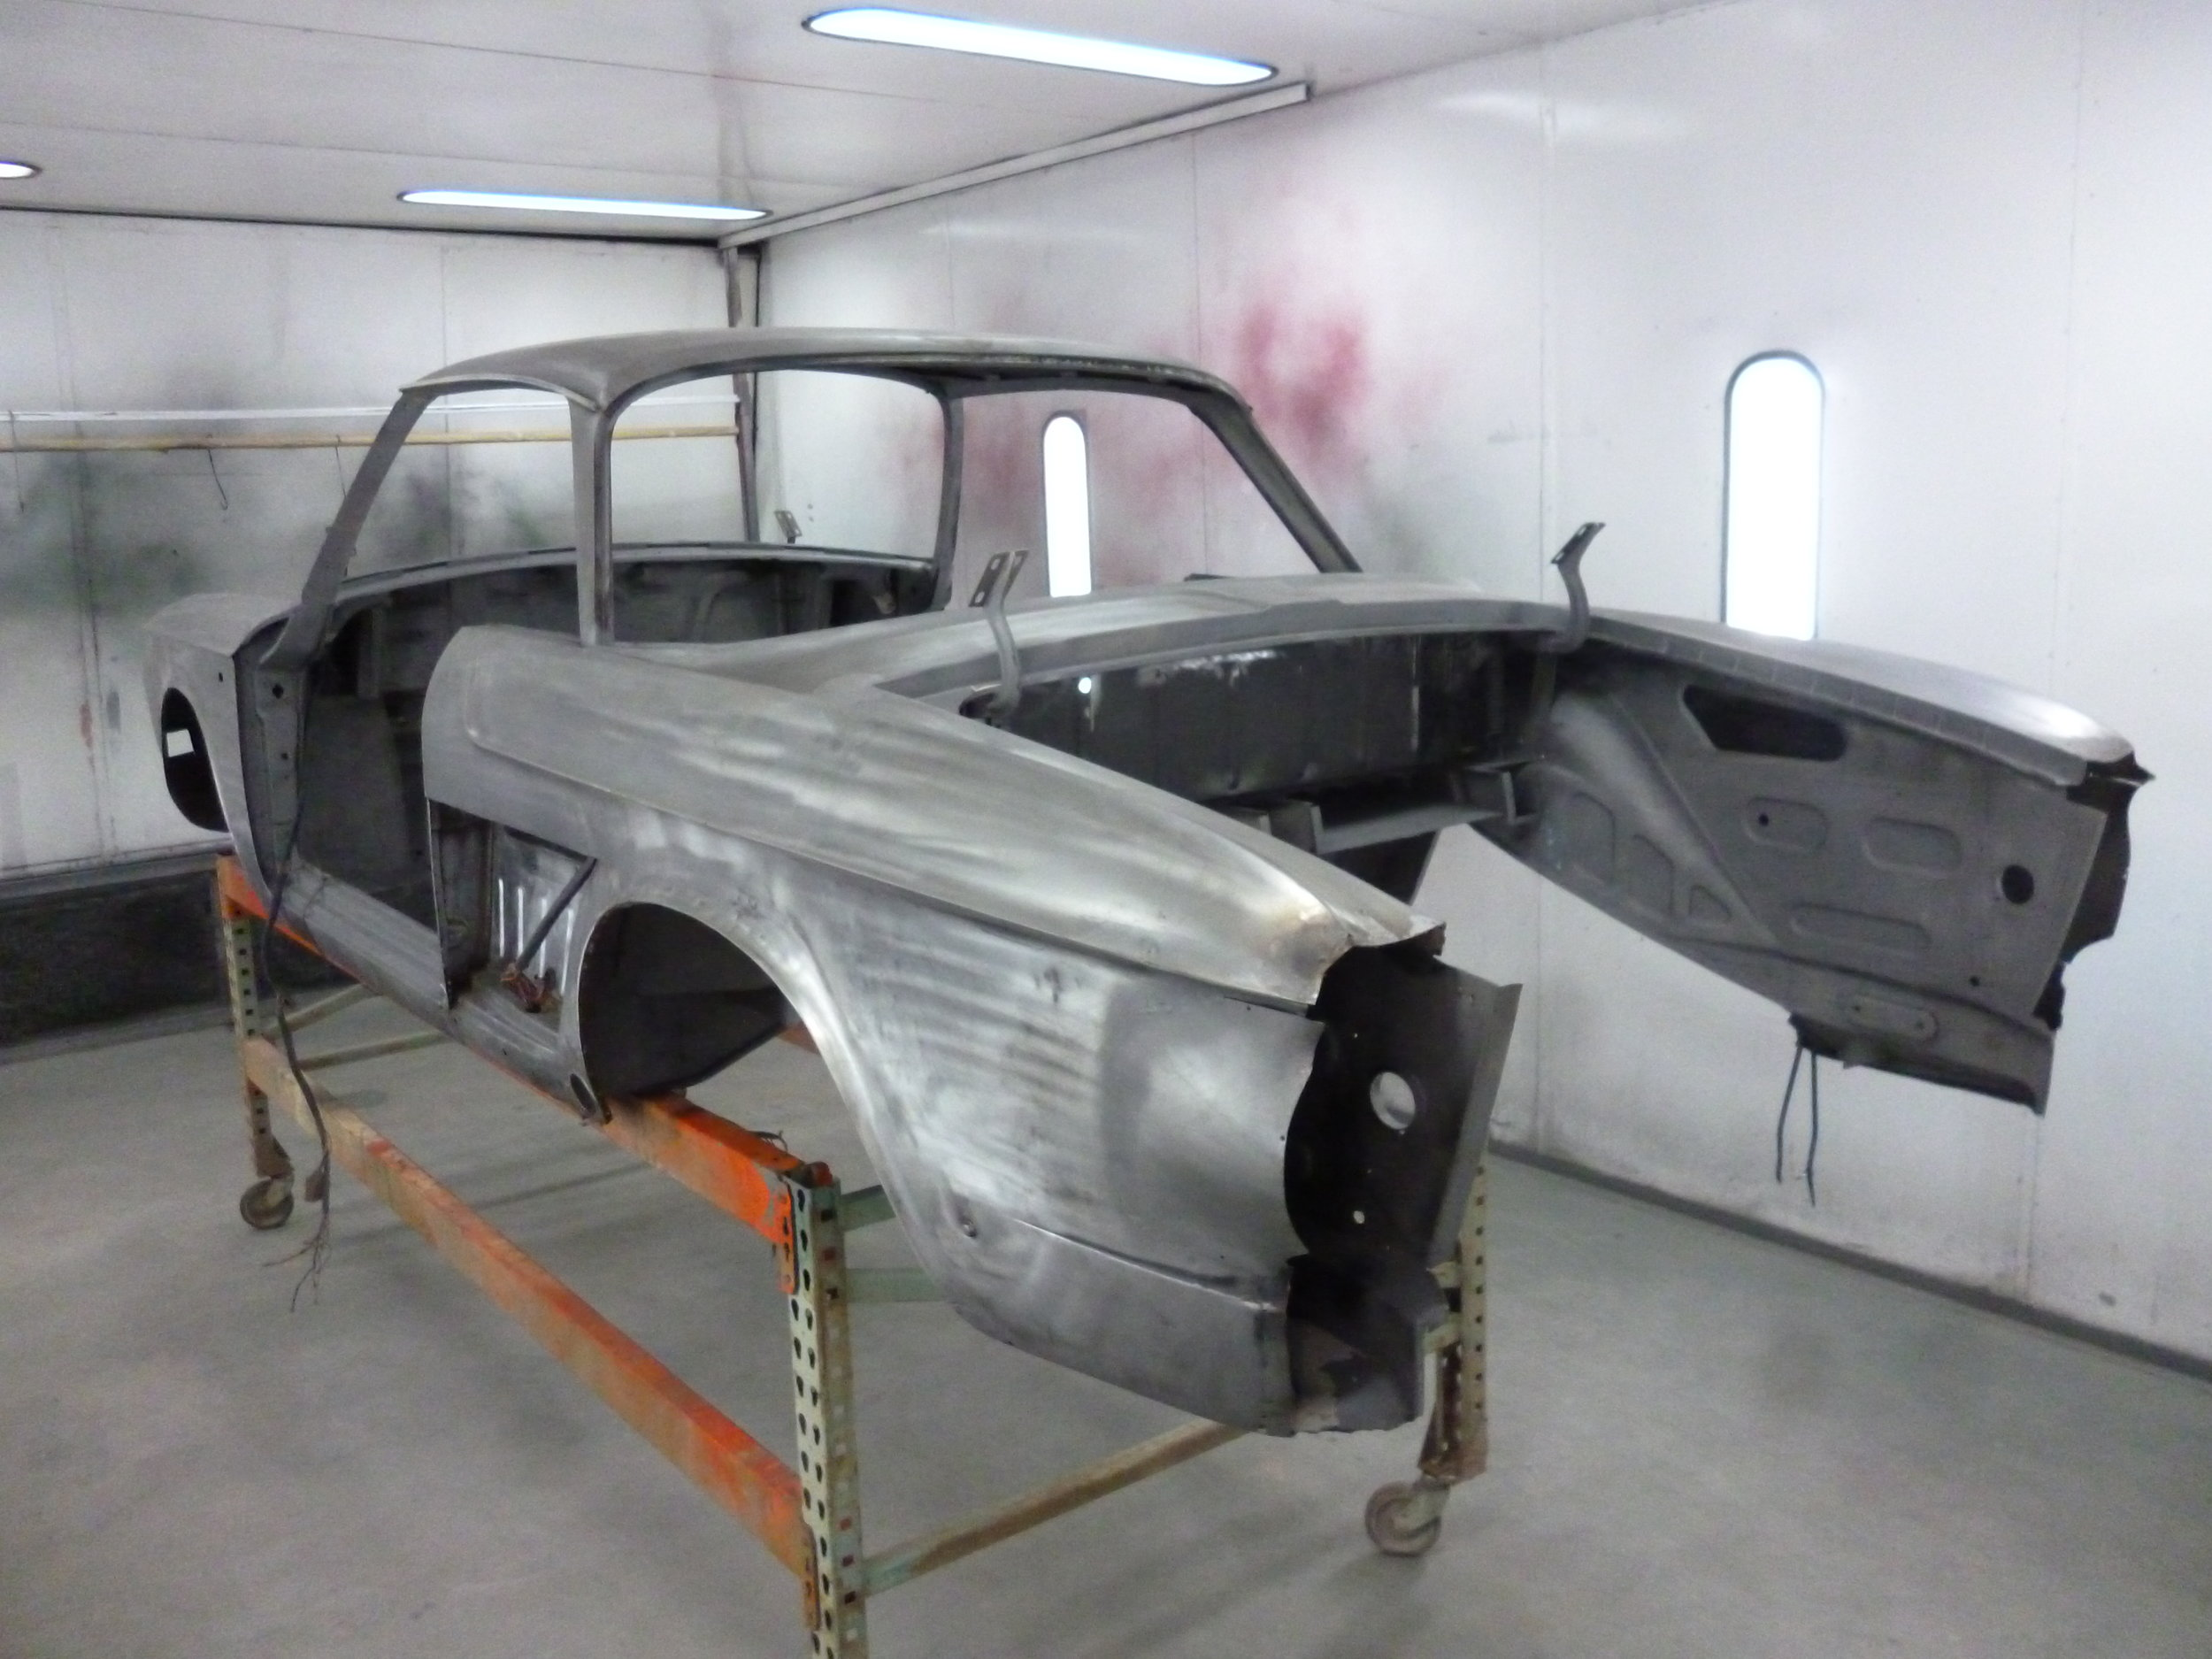 Rear of the body shell. The engine bay has been removed prior to deleivery. The engine bay has been rebuilt using a donor car and NOS panels.